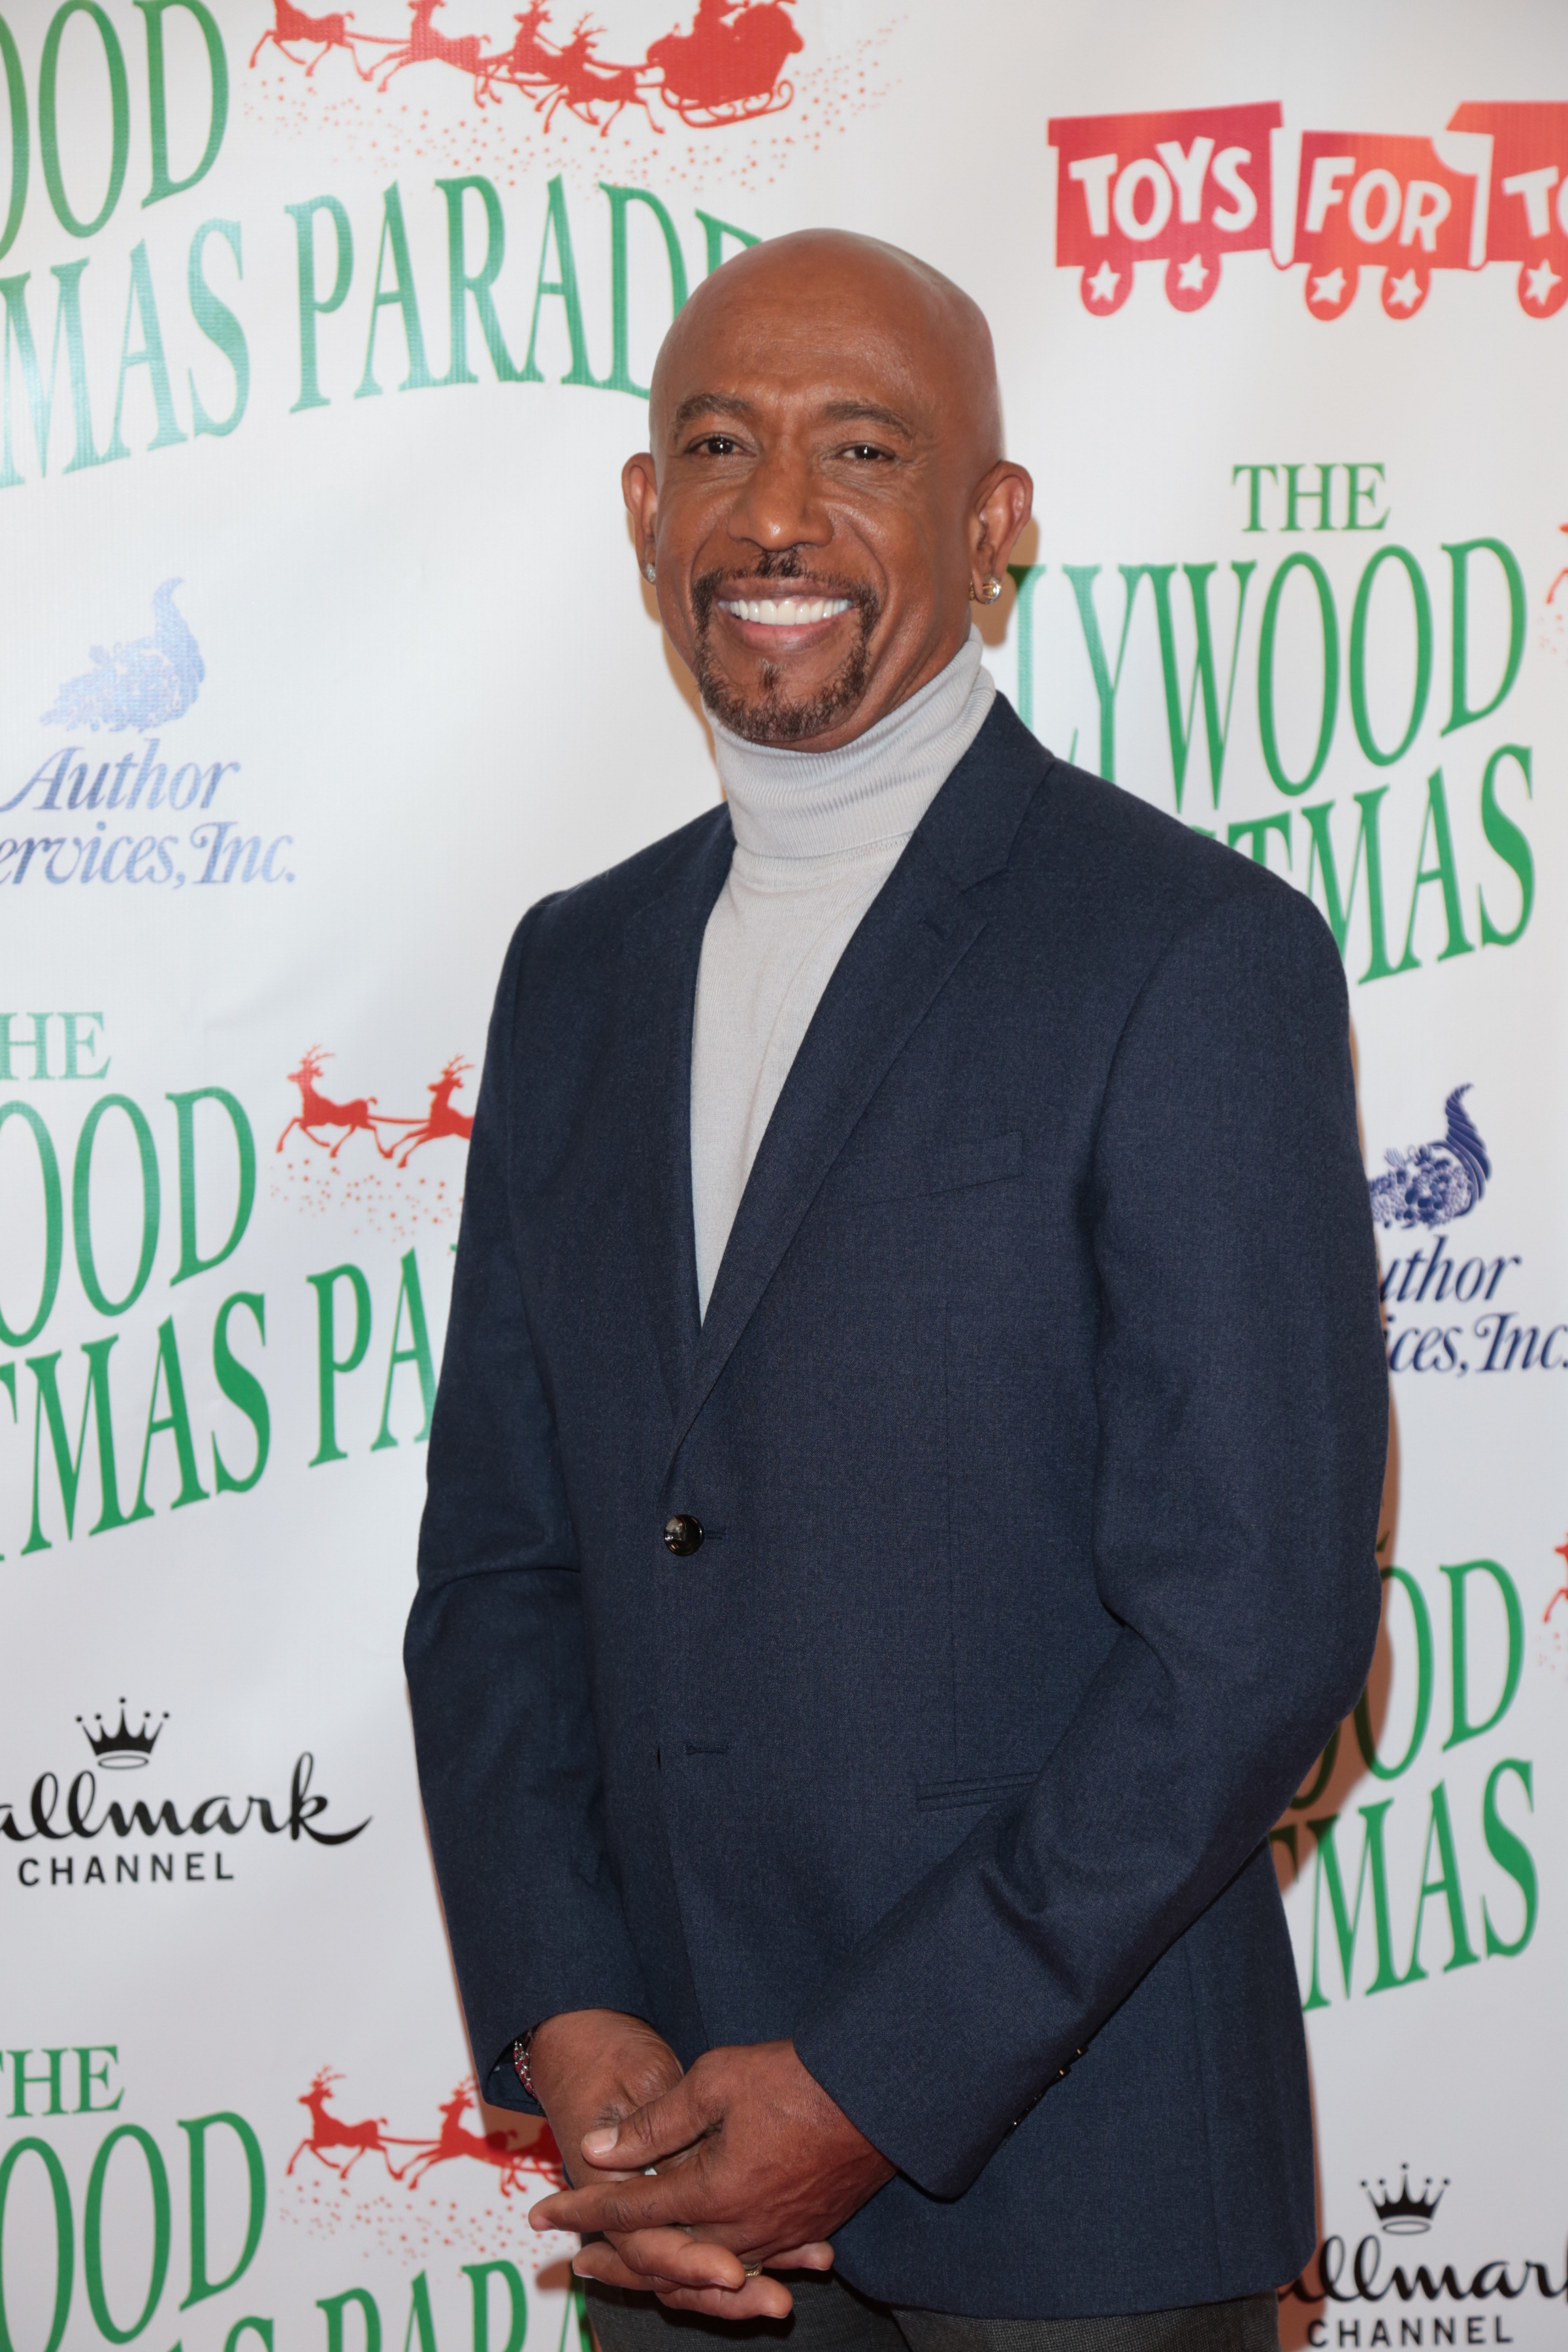 Montel Williams Spent 21 Days In The Hospital: 'I Almost Died'